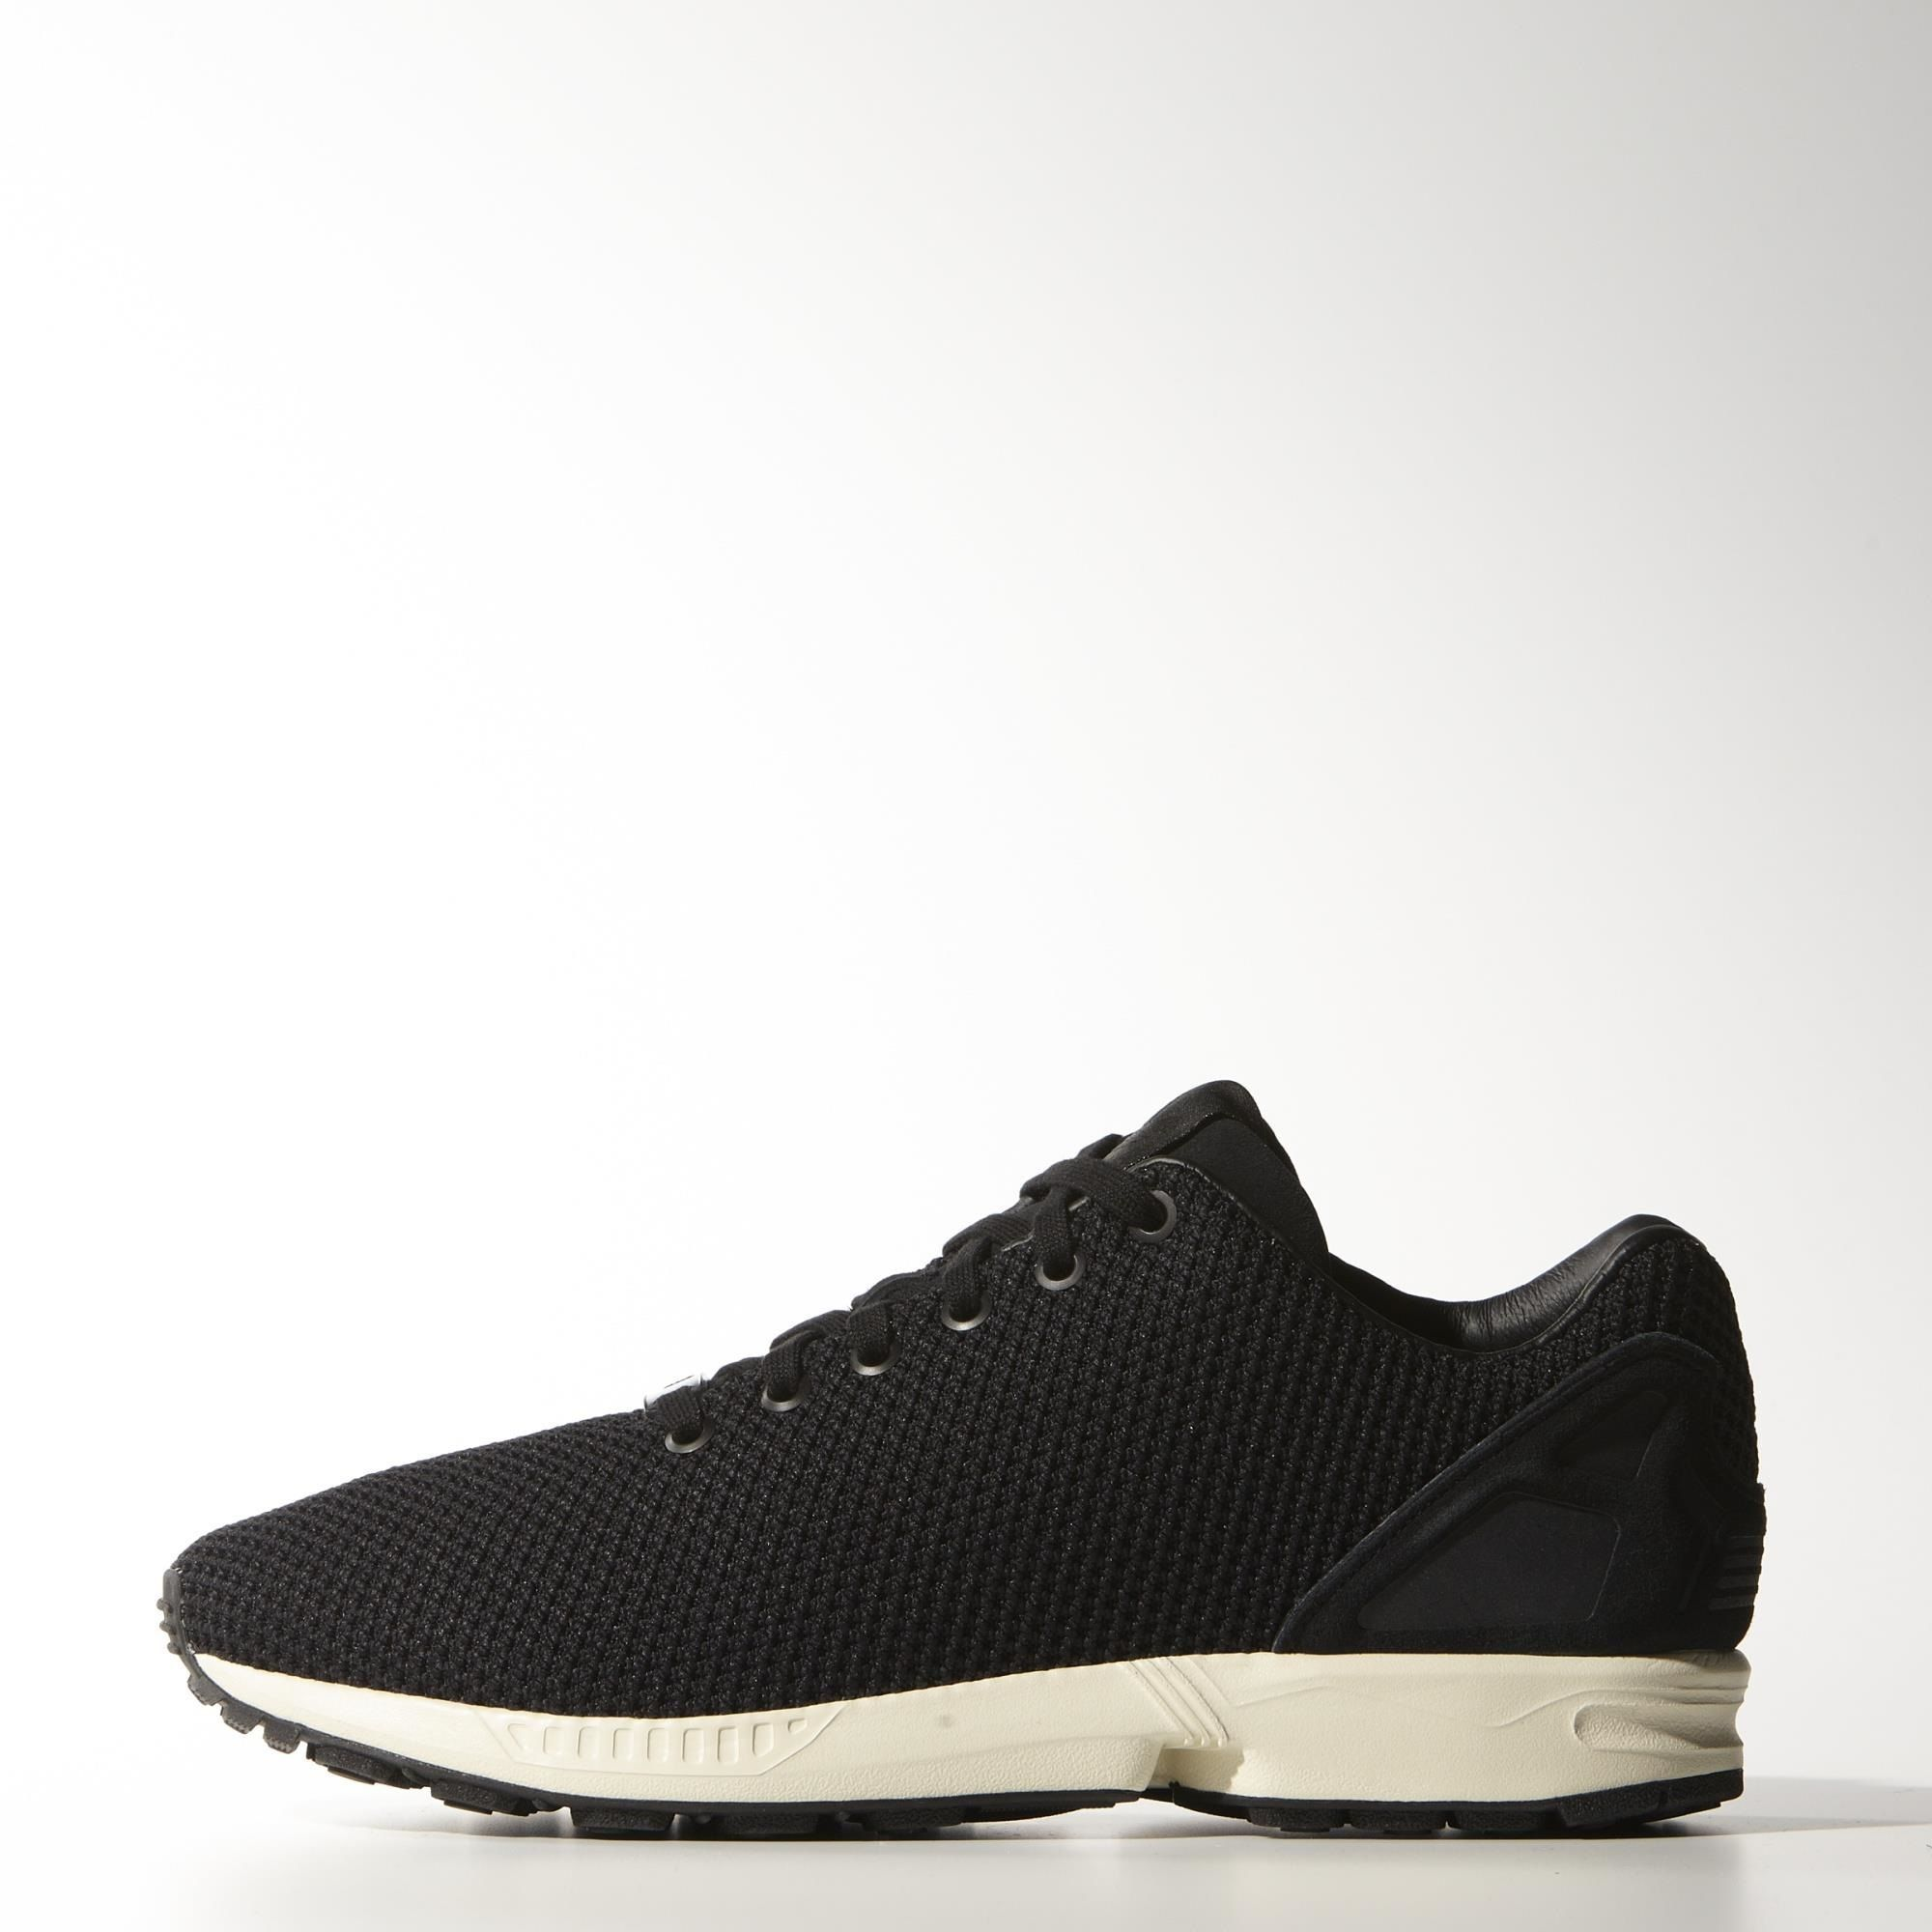 men's adidas zx flux racer asymmetrical casual shoes nz